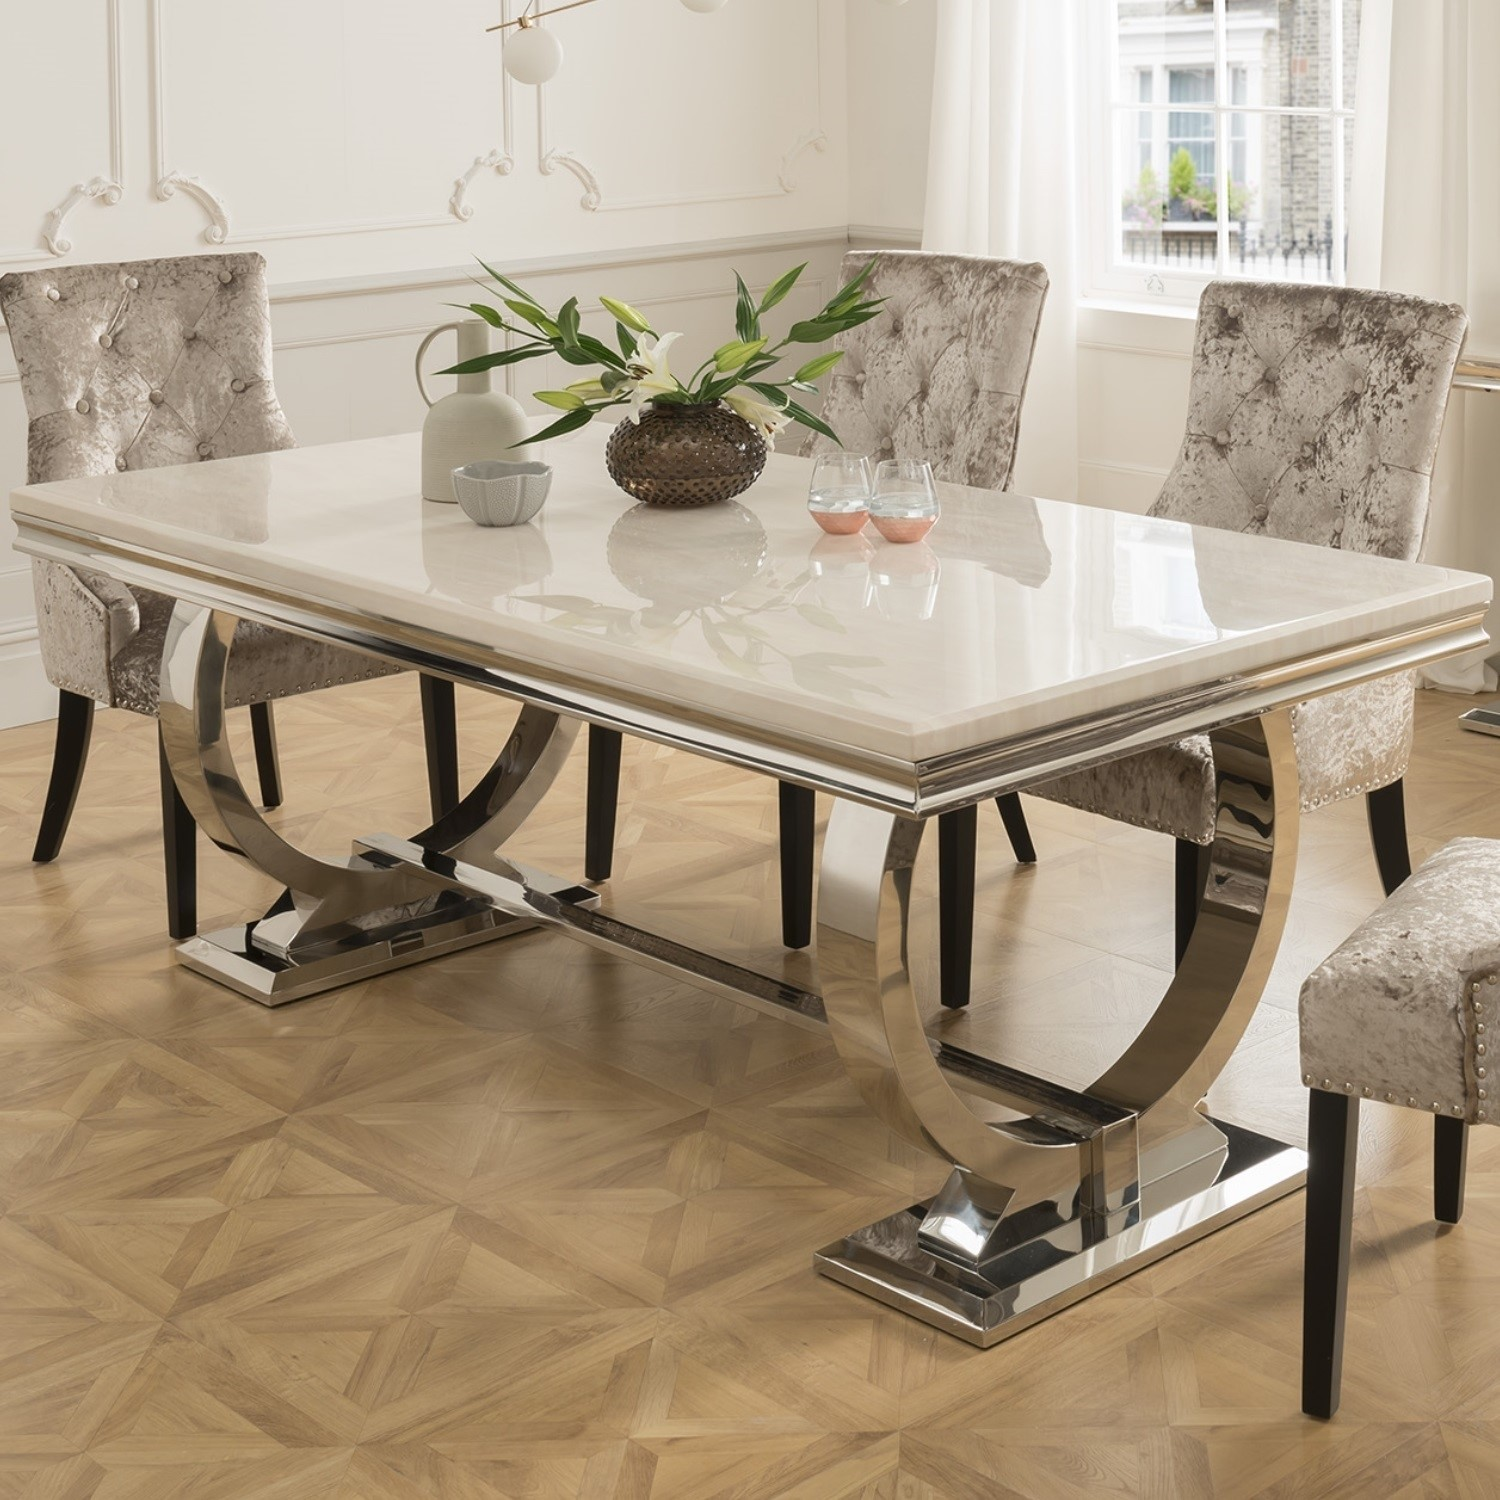 Arianna Rectangle Cream Marble Dining Table 180cm Vida Living Furniture123